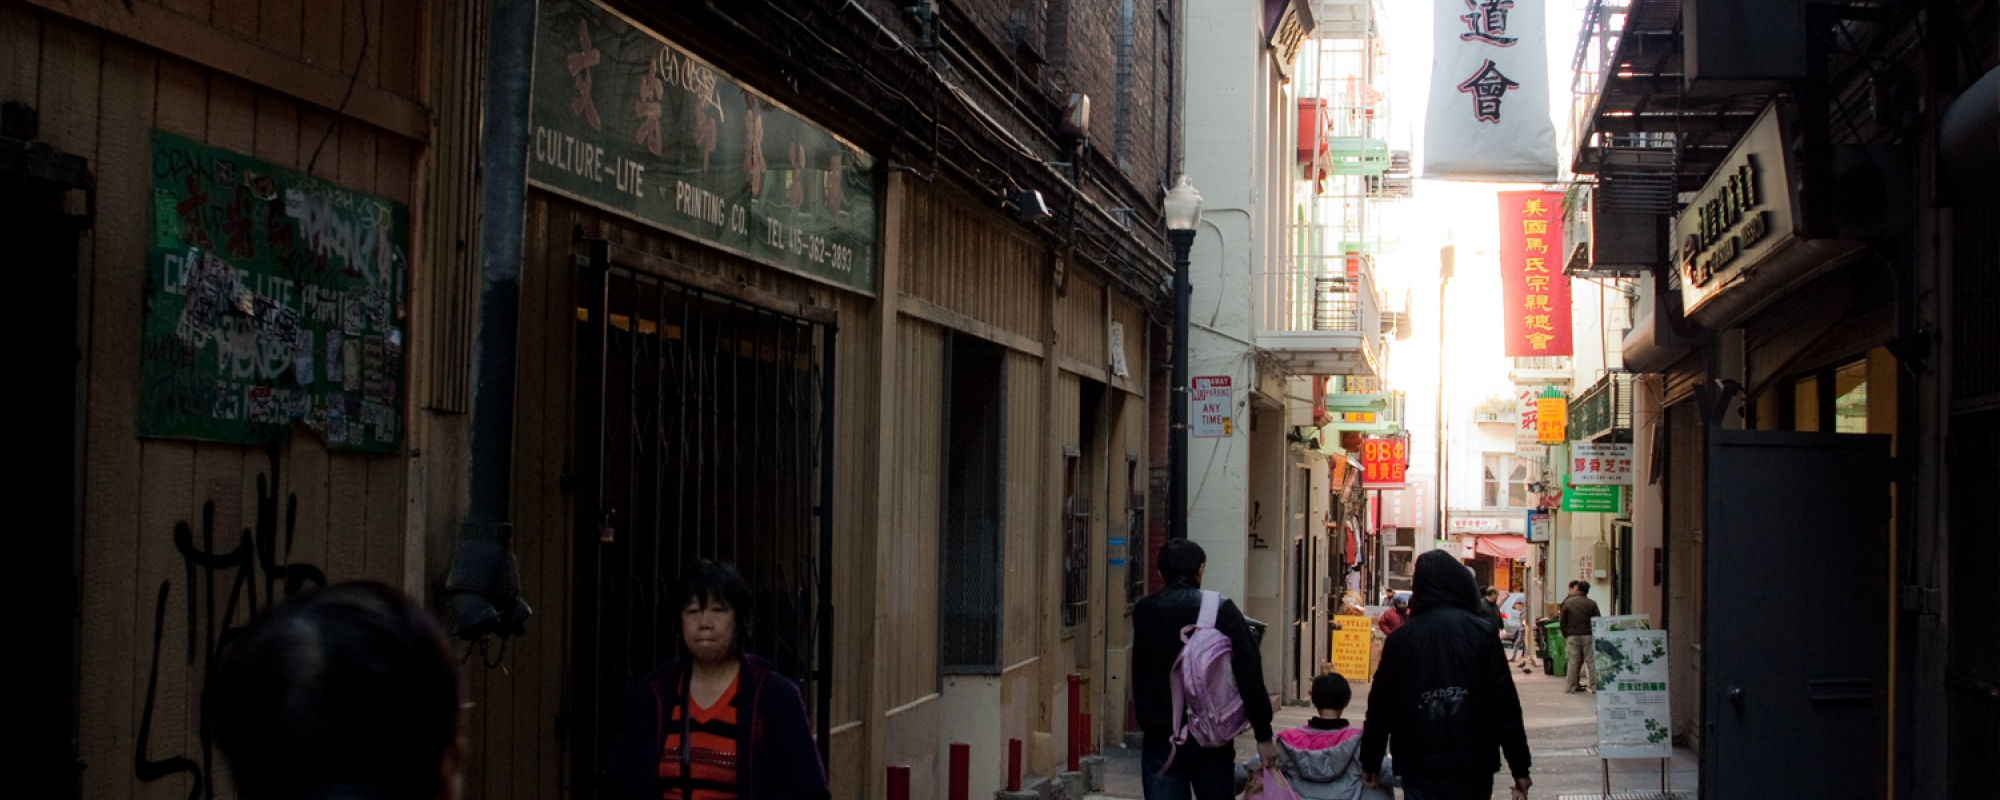 Chinatown Alleyway Renovation Program